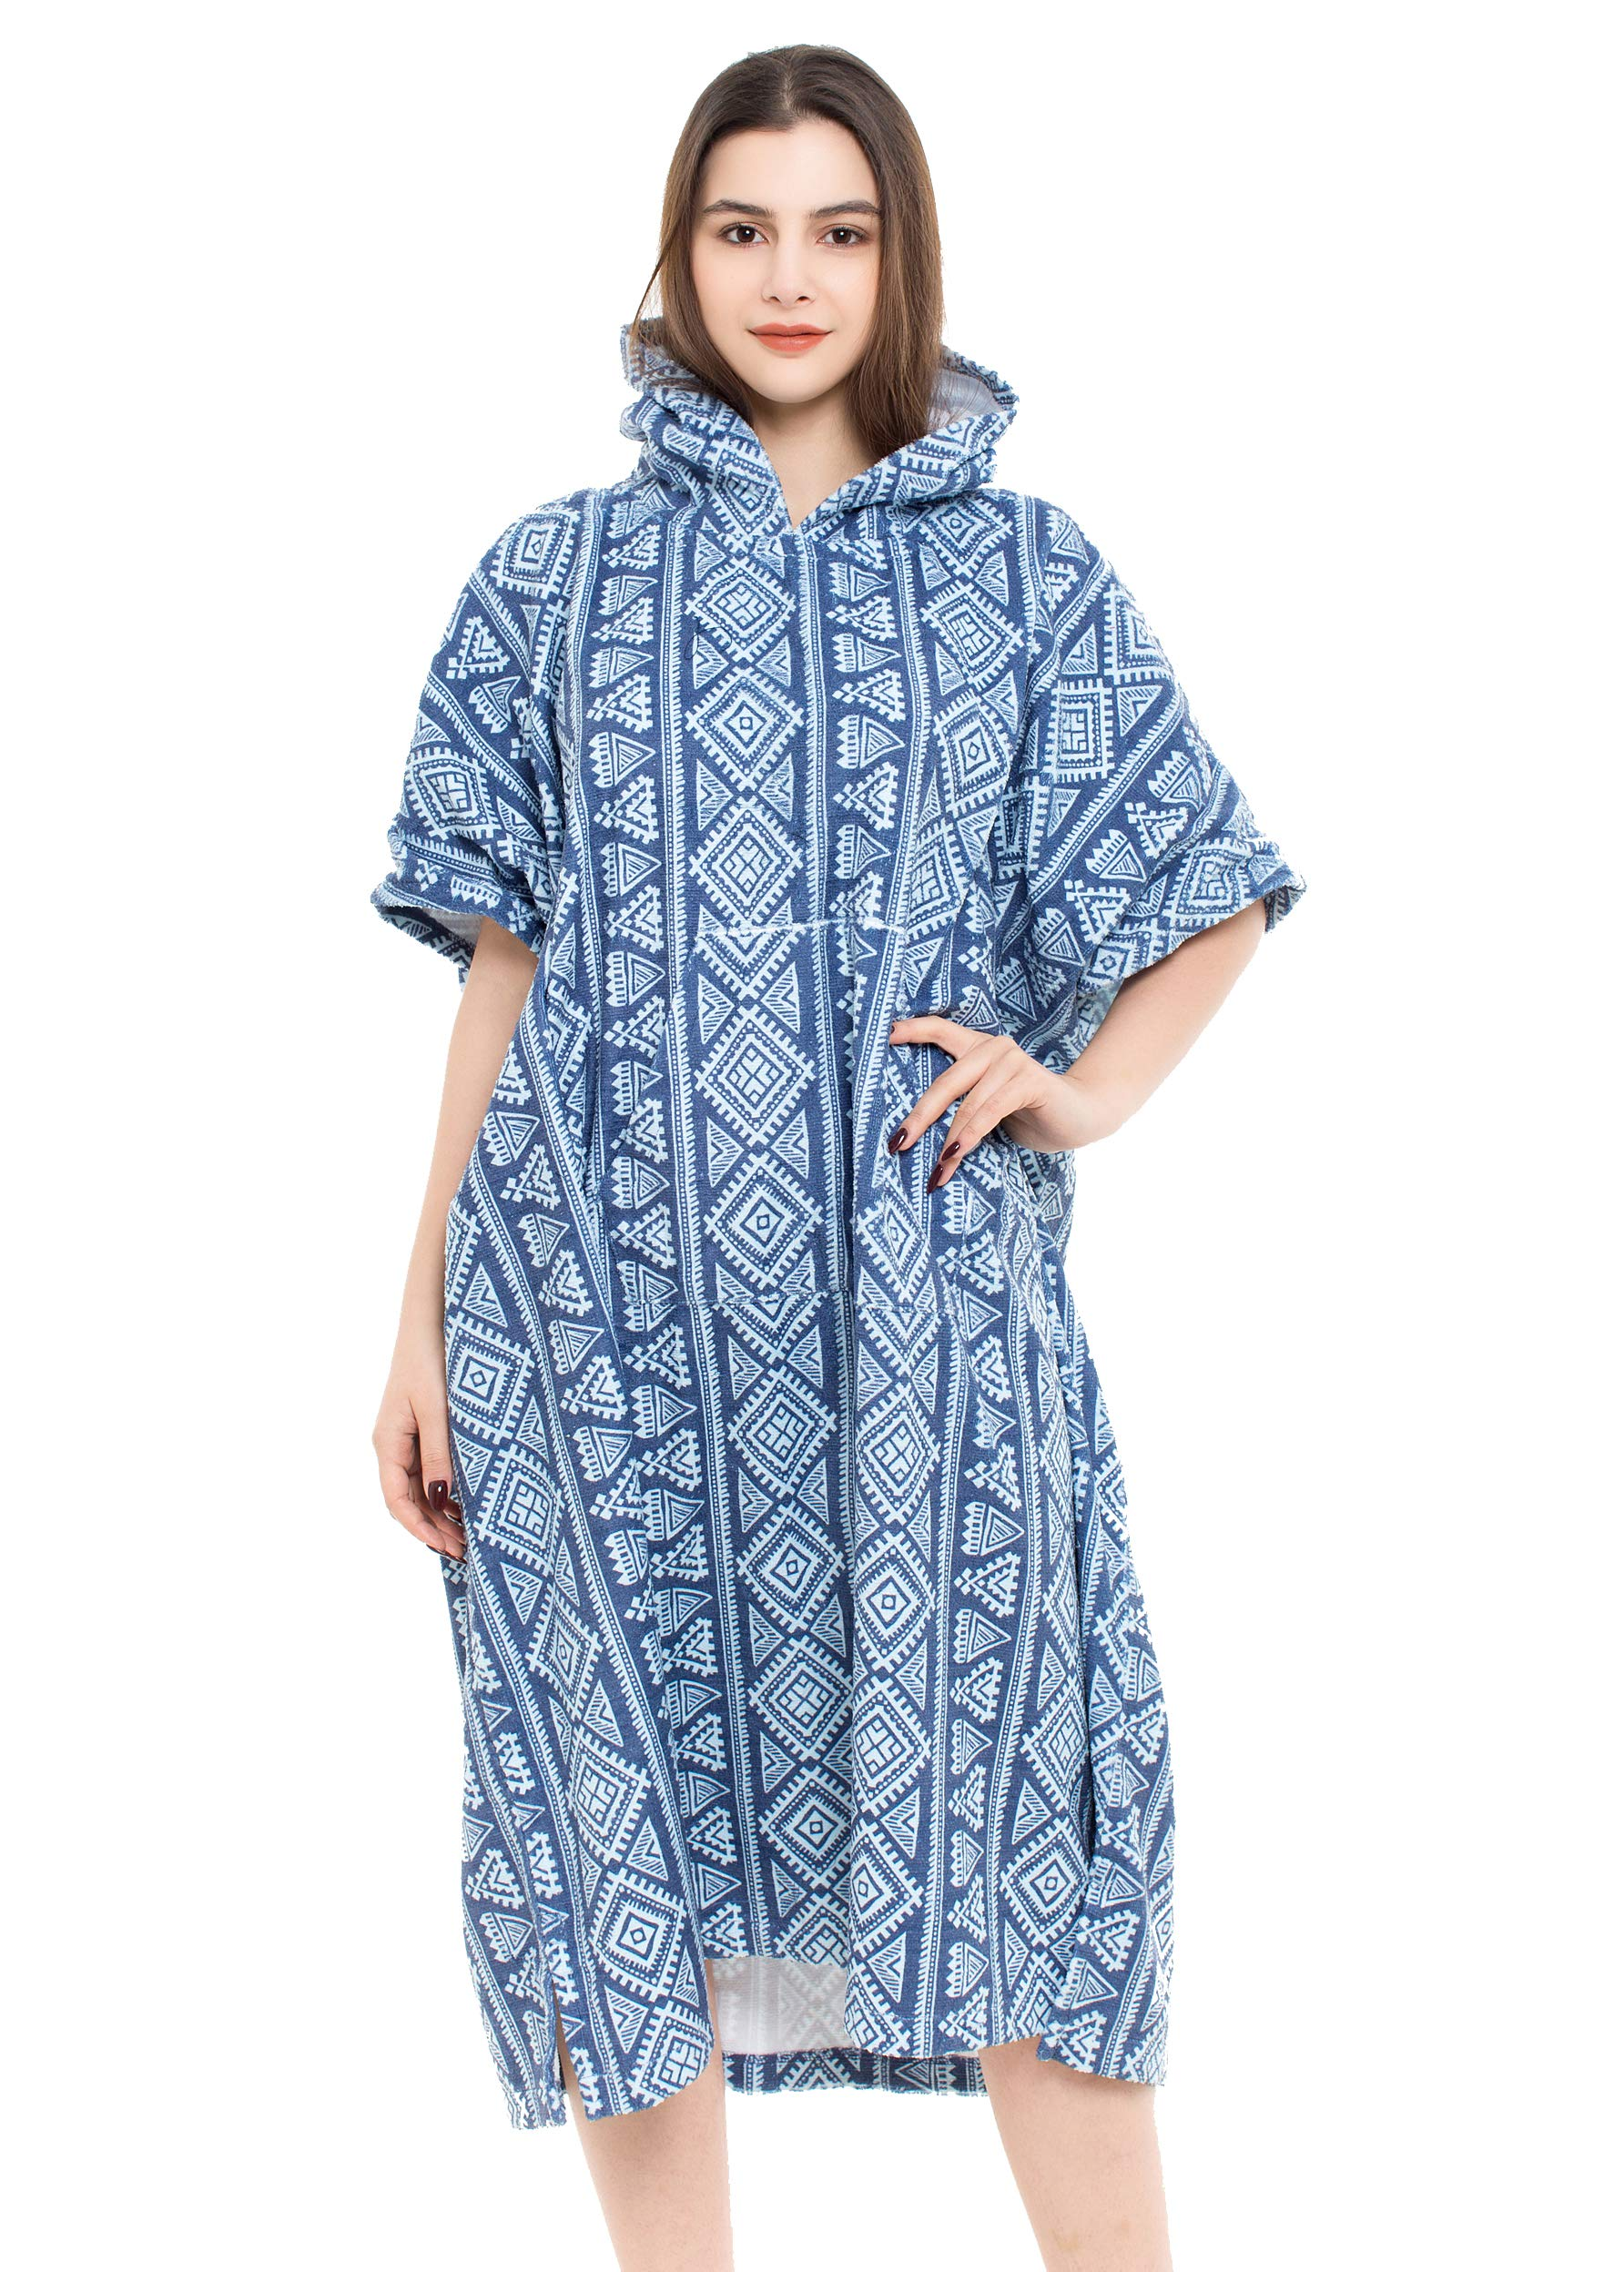 REEMONDE Changing Towel Surf Poncho Robe with Hood | One Size Fits All | Great for Changing Out of Your Wetsuit (Bohe-Blue)